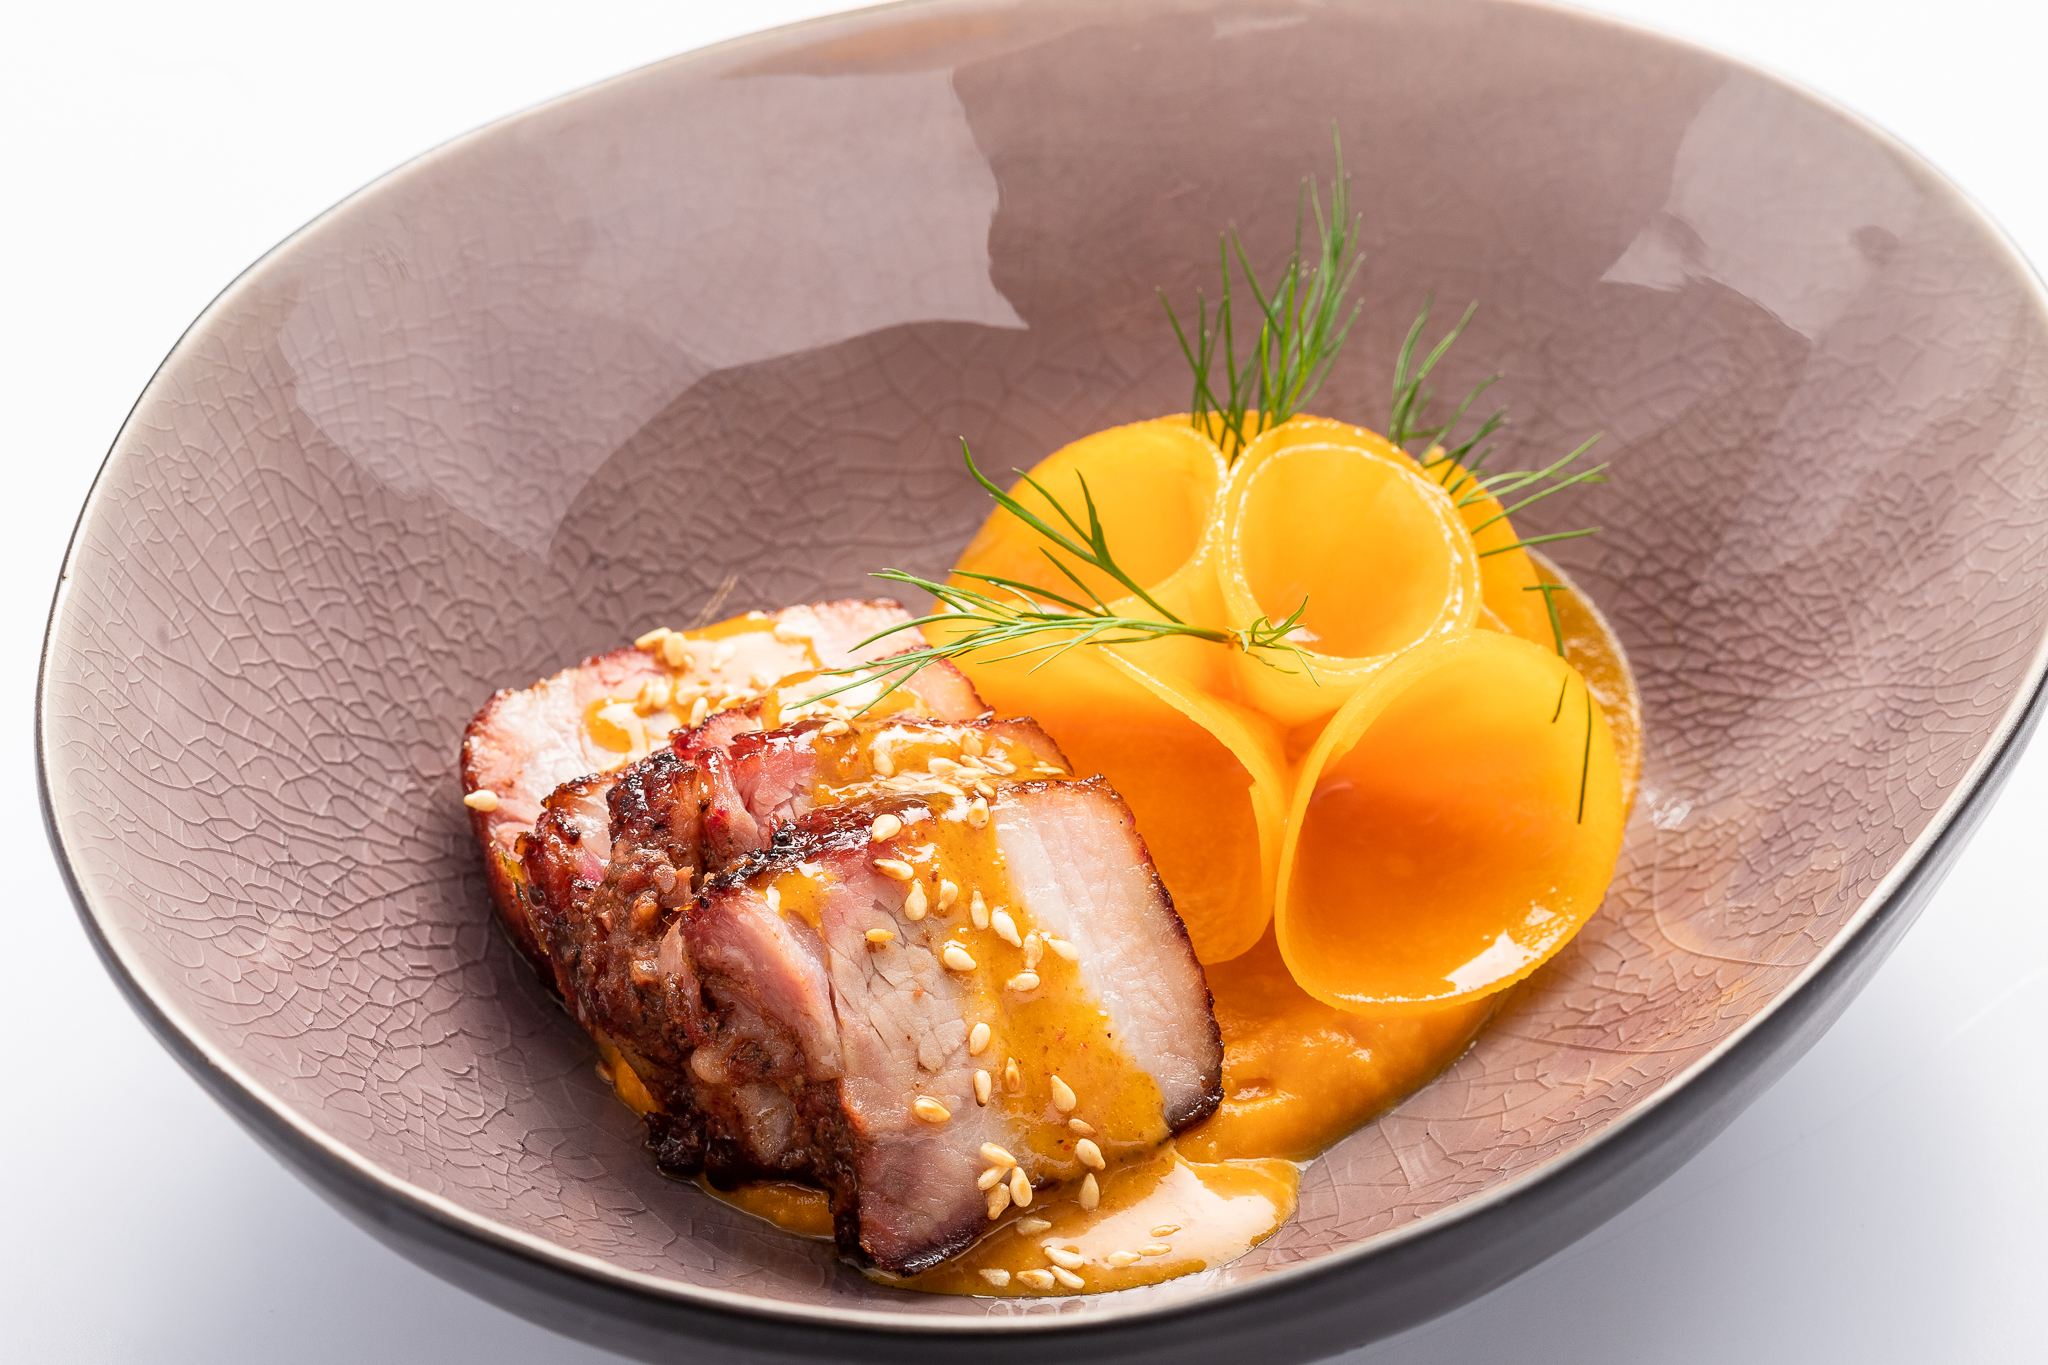 Roasted and lacquered Bras pork, pickled butternut, spicy peanut sauce - DE MANGERIE